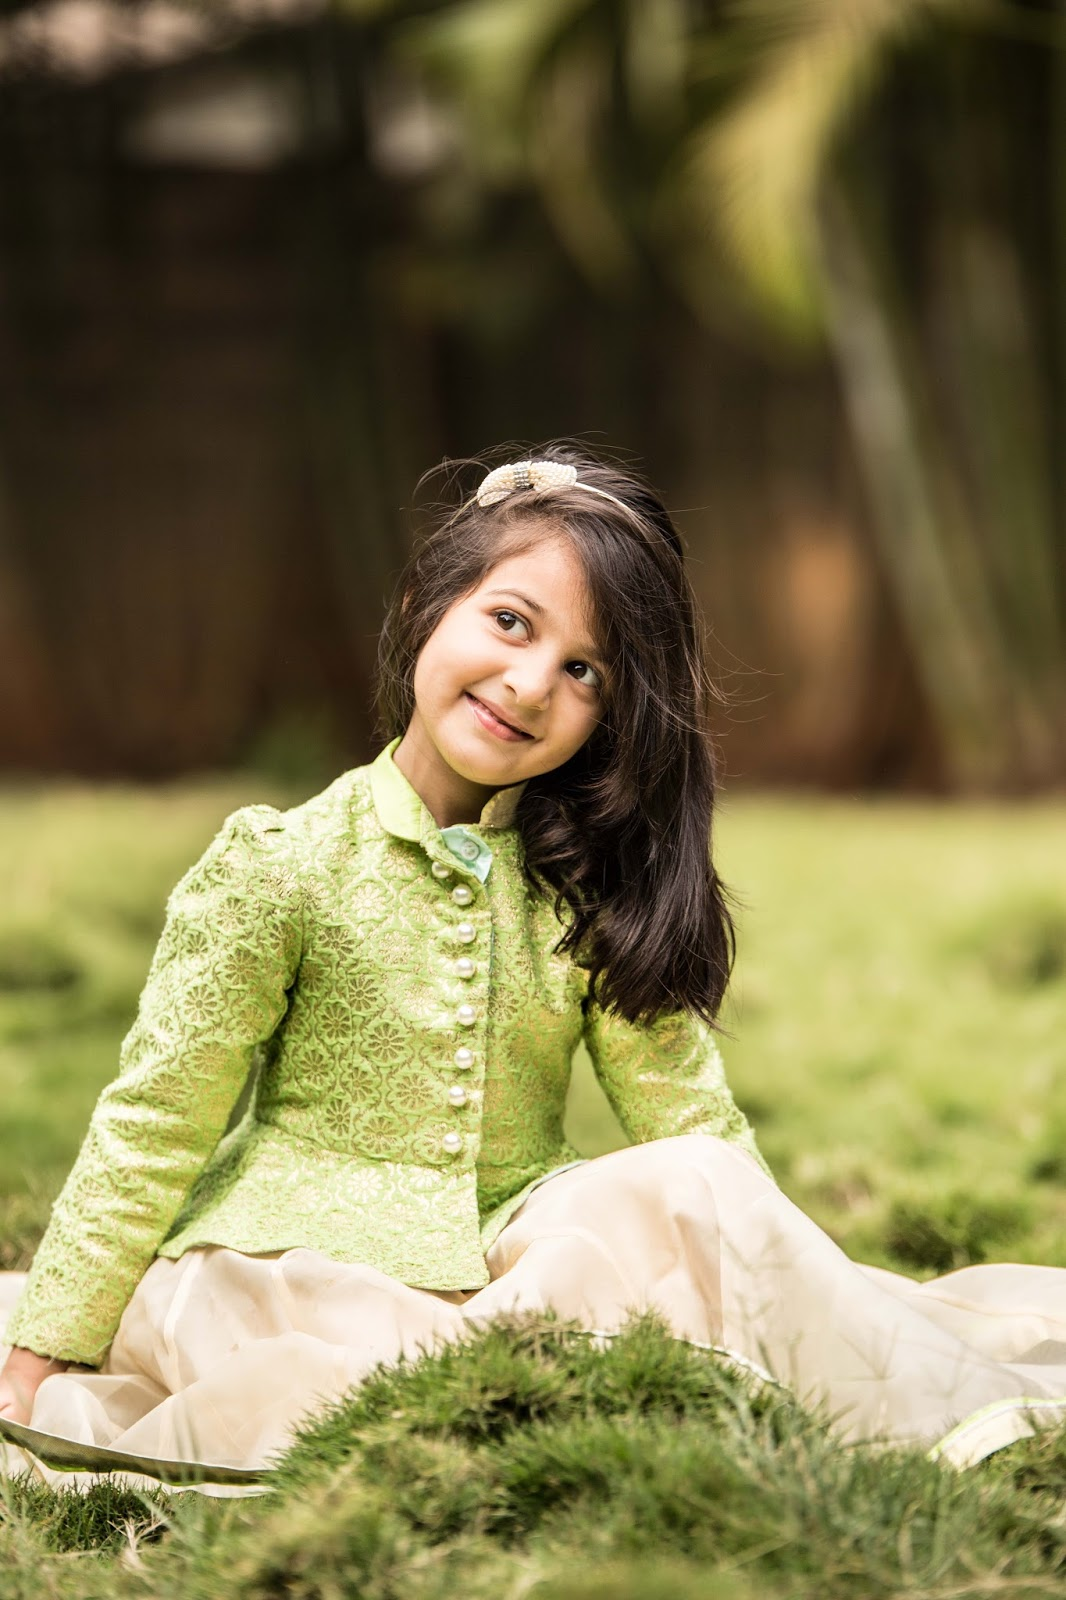 Lehengas for kids by Vintage Desi,beautiful girl, child girl model, little girl wearing beautiful dress, fashion for kids, indian outfits for kids